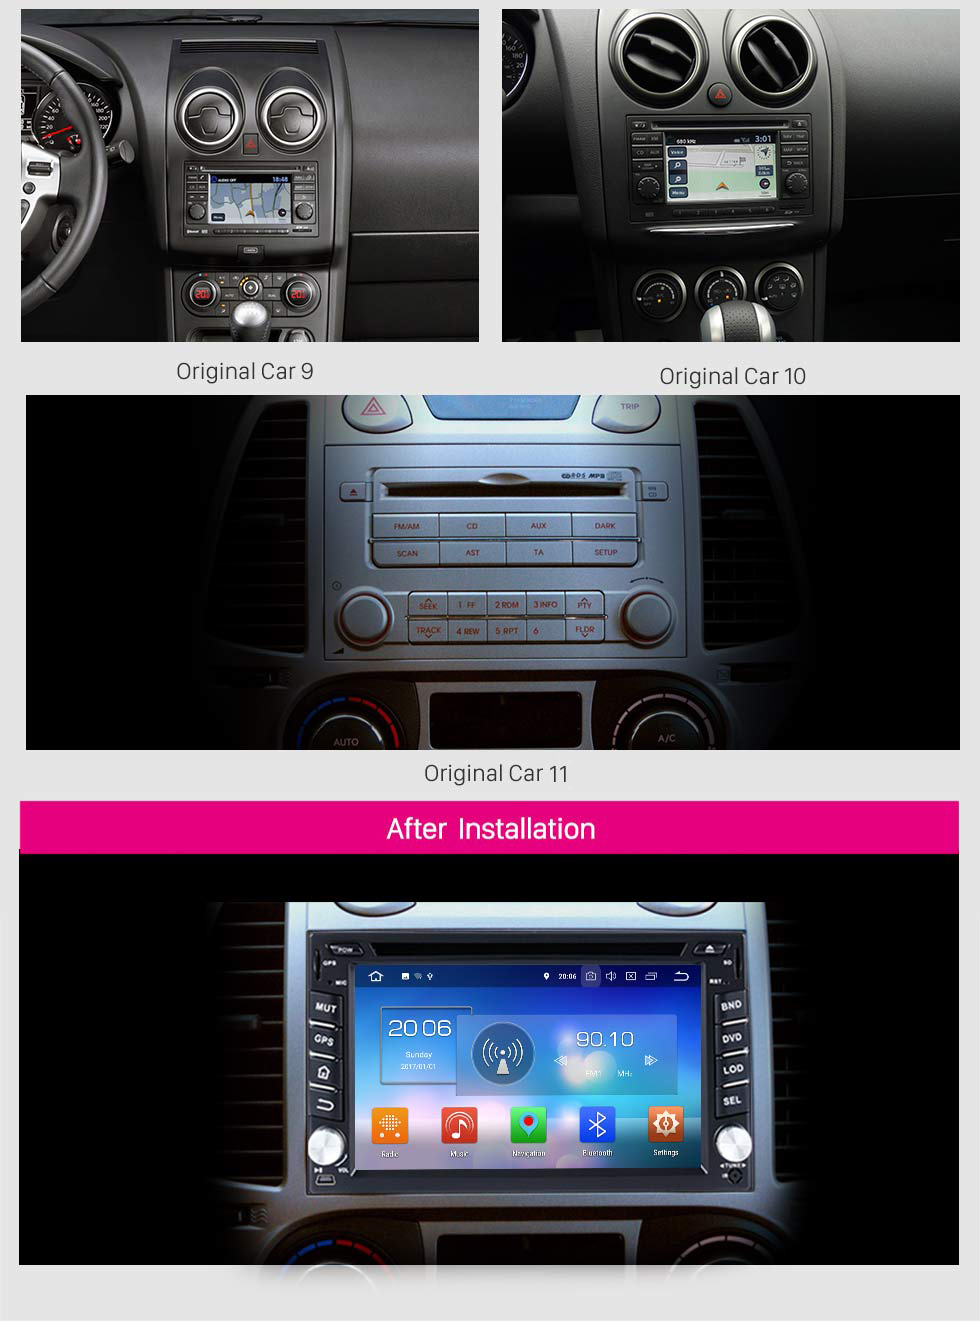 Seicane Android 8.0 Radio GPS Navigation System for 2007-2010 Nissan QASHQAI with WIFI Bluetooth Mirror link Touch Screen DVR TV OBD2 4G USB SD Rearview Camera 1080P Video